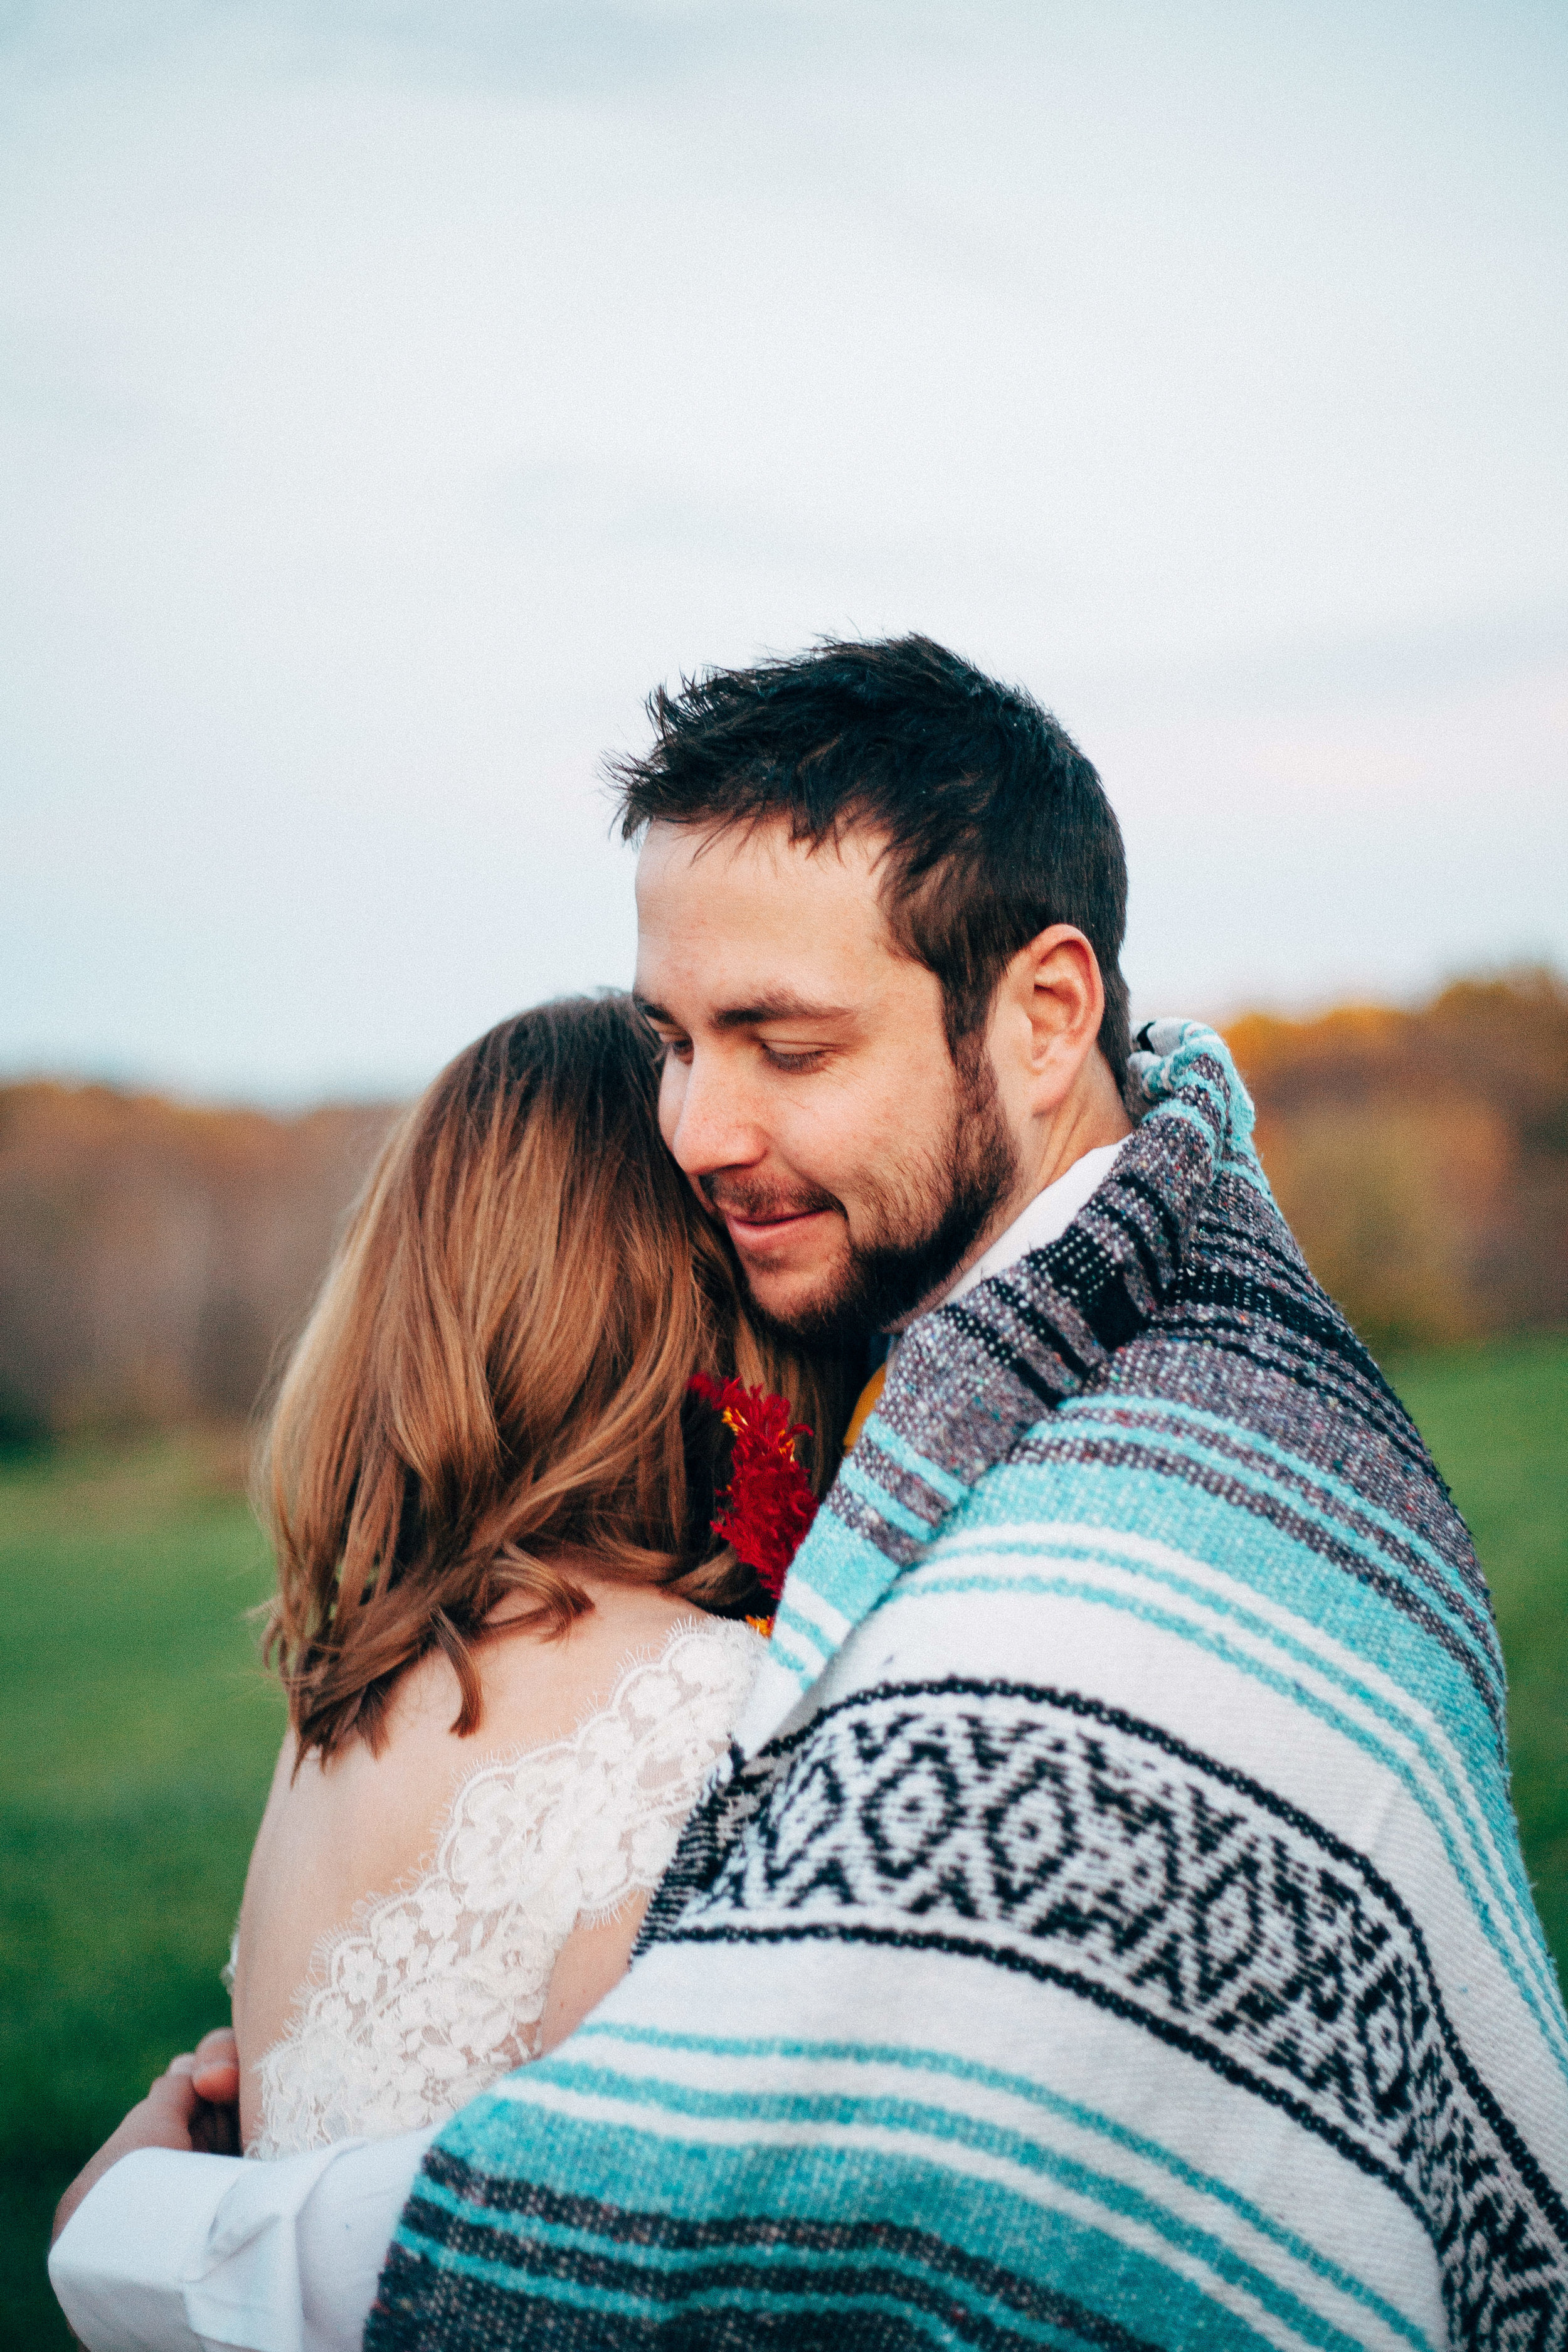 Quirky Colorful Wedding Photographers Effortless Timeless Outdoor Fall Elopement Images